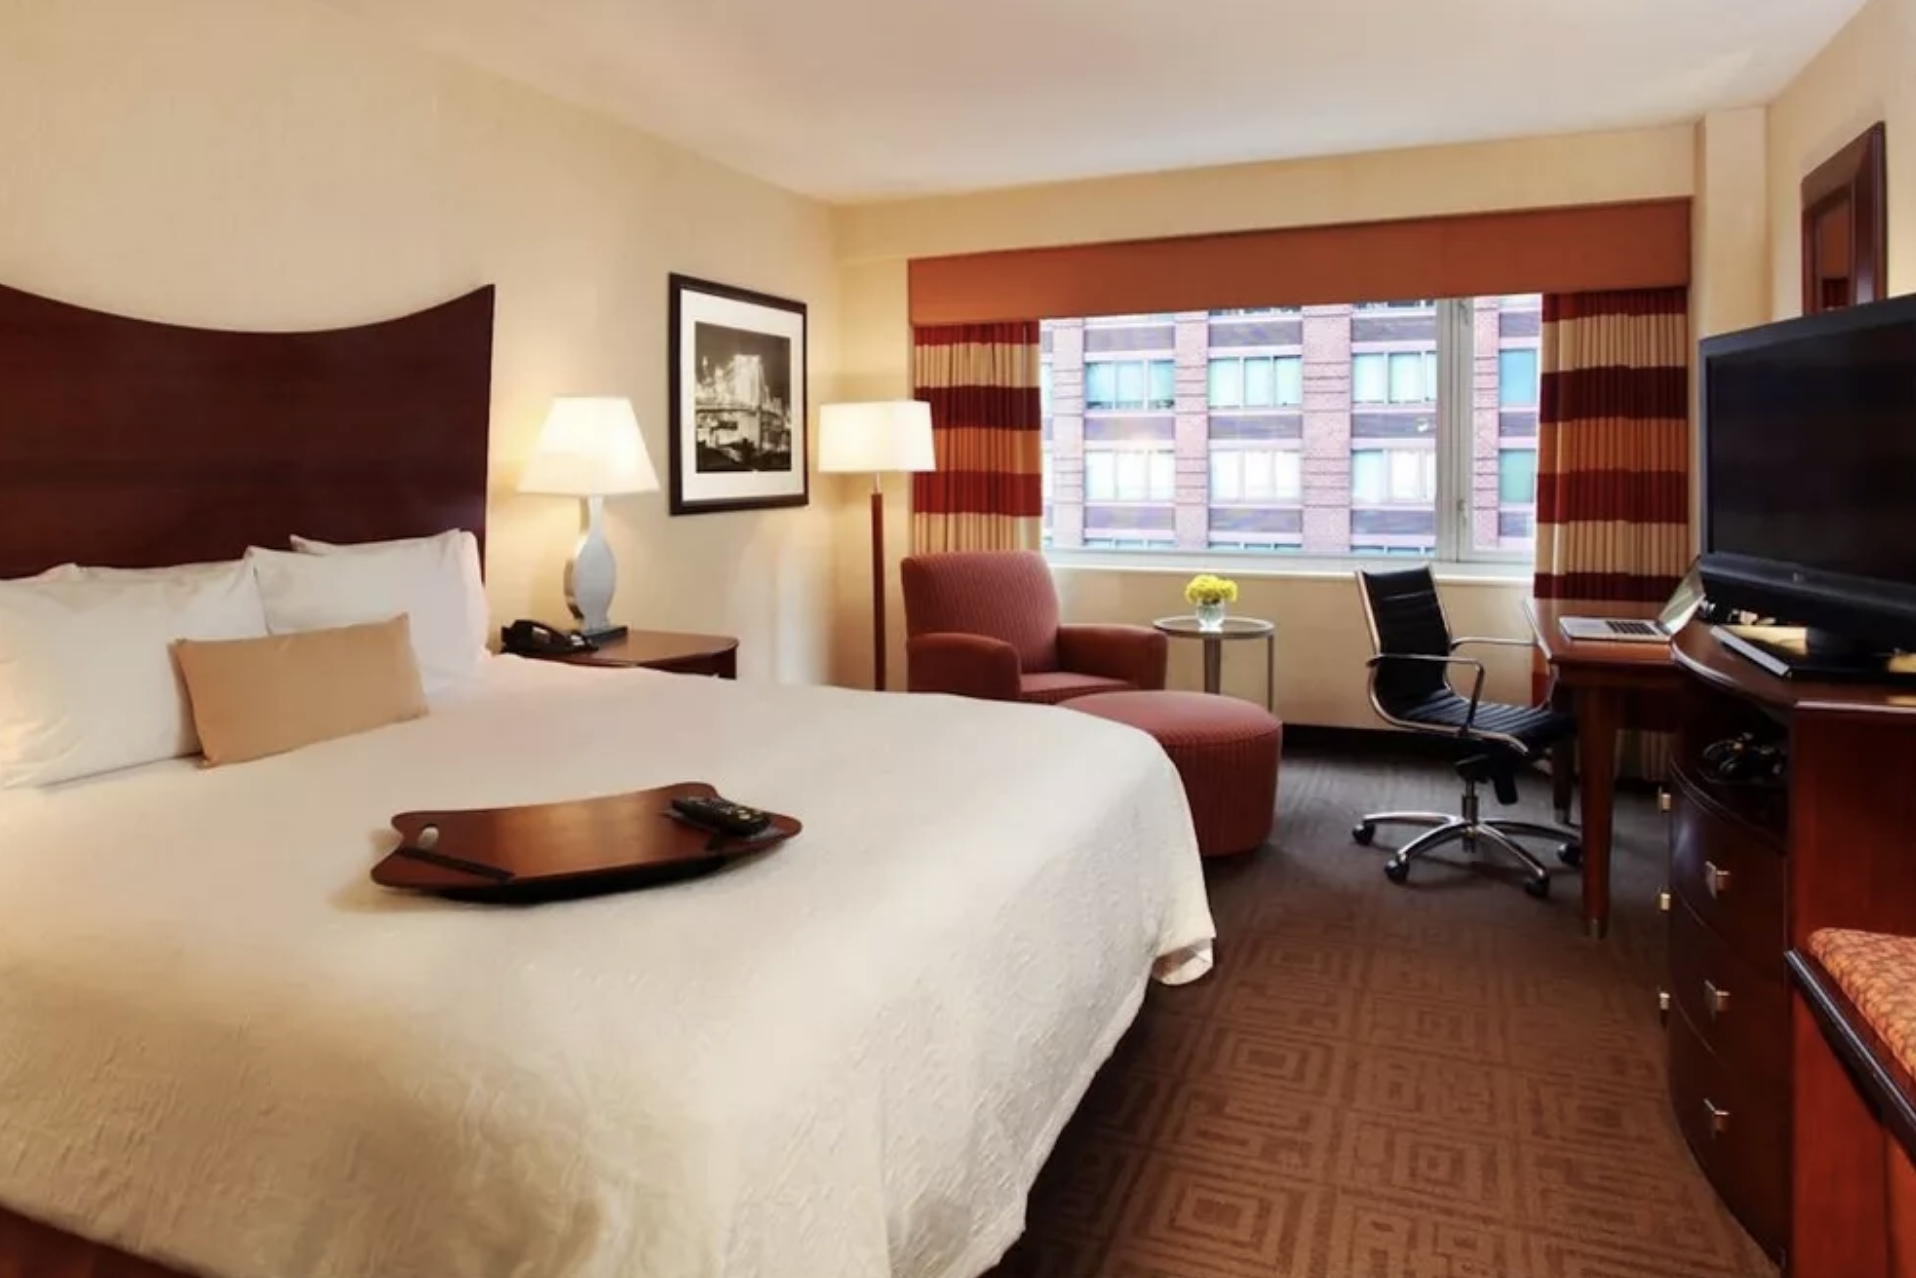 HOTELS  - Aug 25-28, 2018Hampton Inn Times Square North(breakfast included)(parking included- garage attached to hotel)Address: 851 Eighth Avenue, New York, New York, 10019Telephone:1-212-581-4100Confirmation: 7375054992719